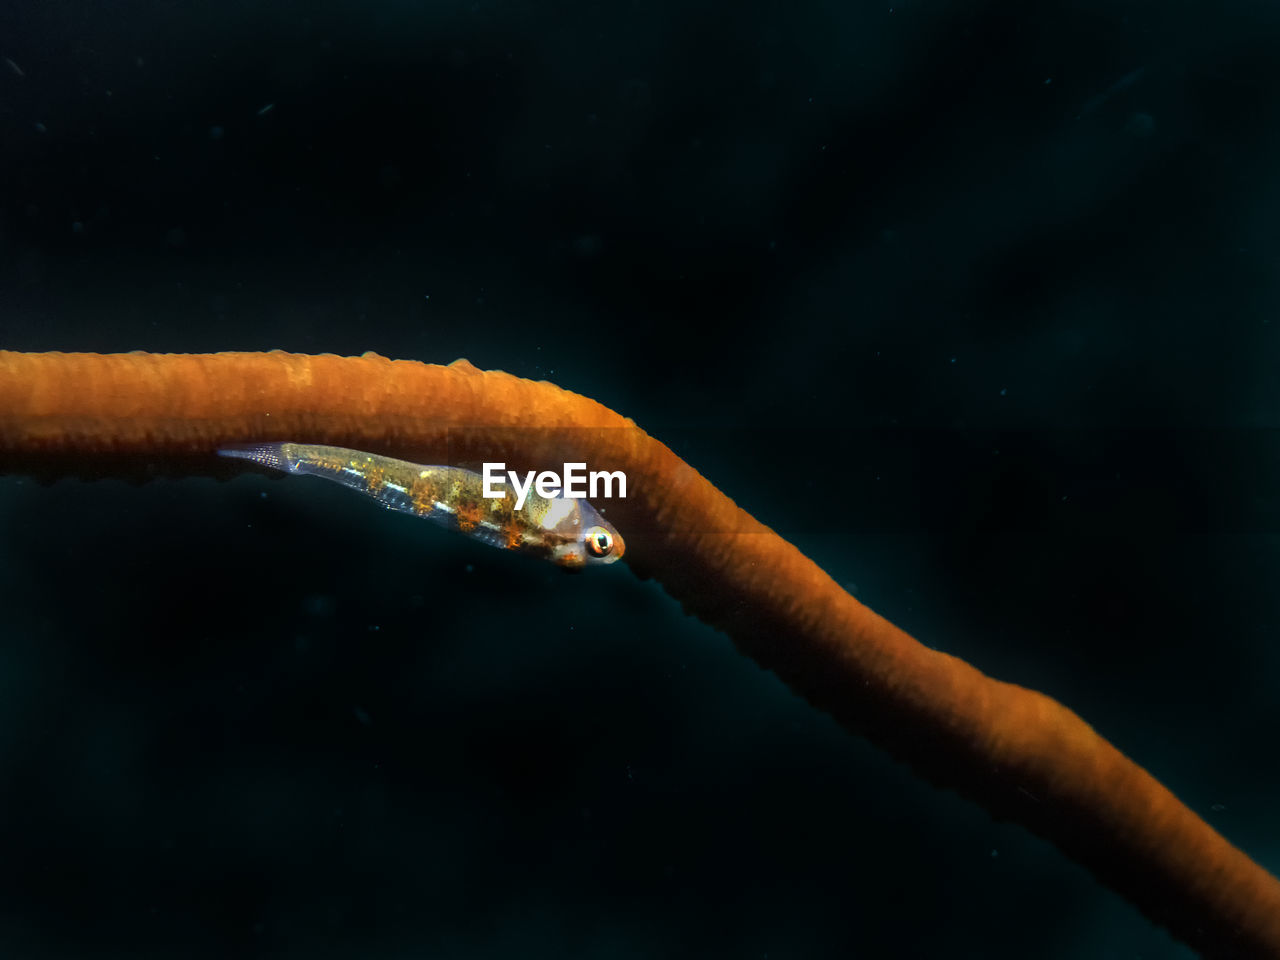 A lone whip coral goby in malapascua island, philippines